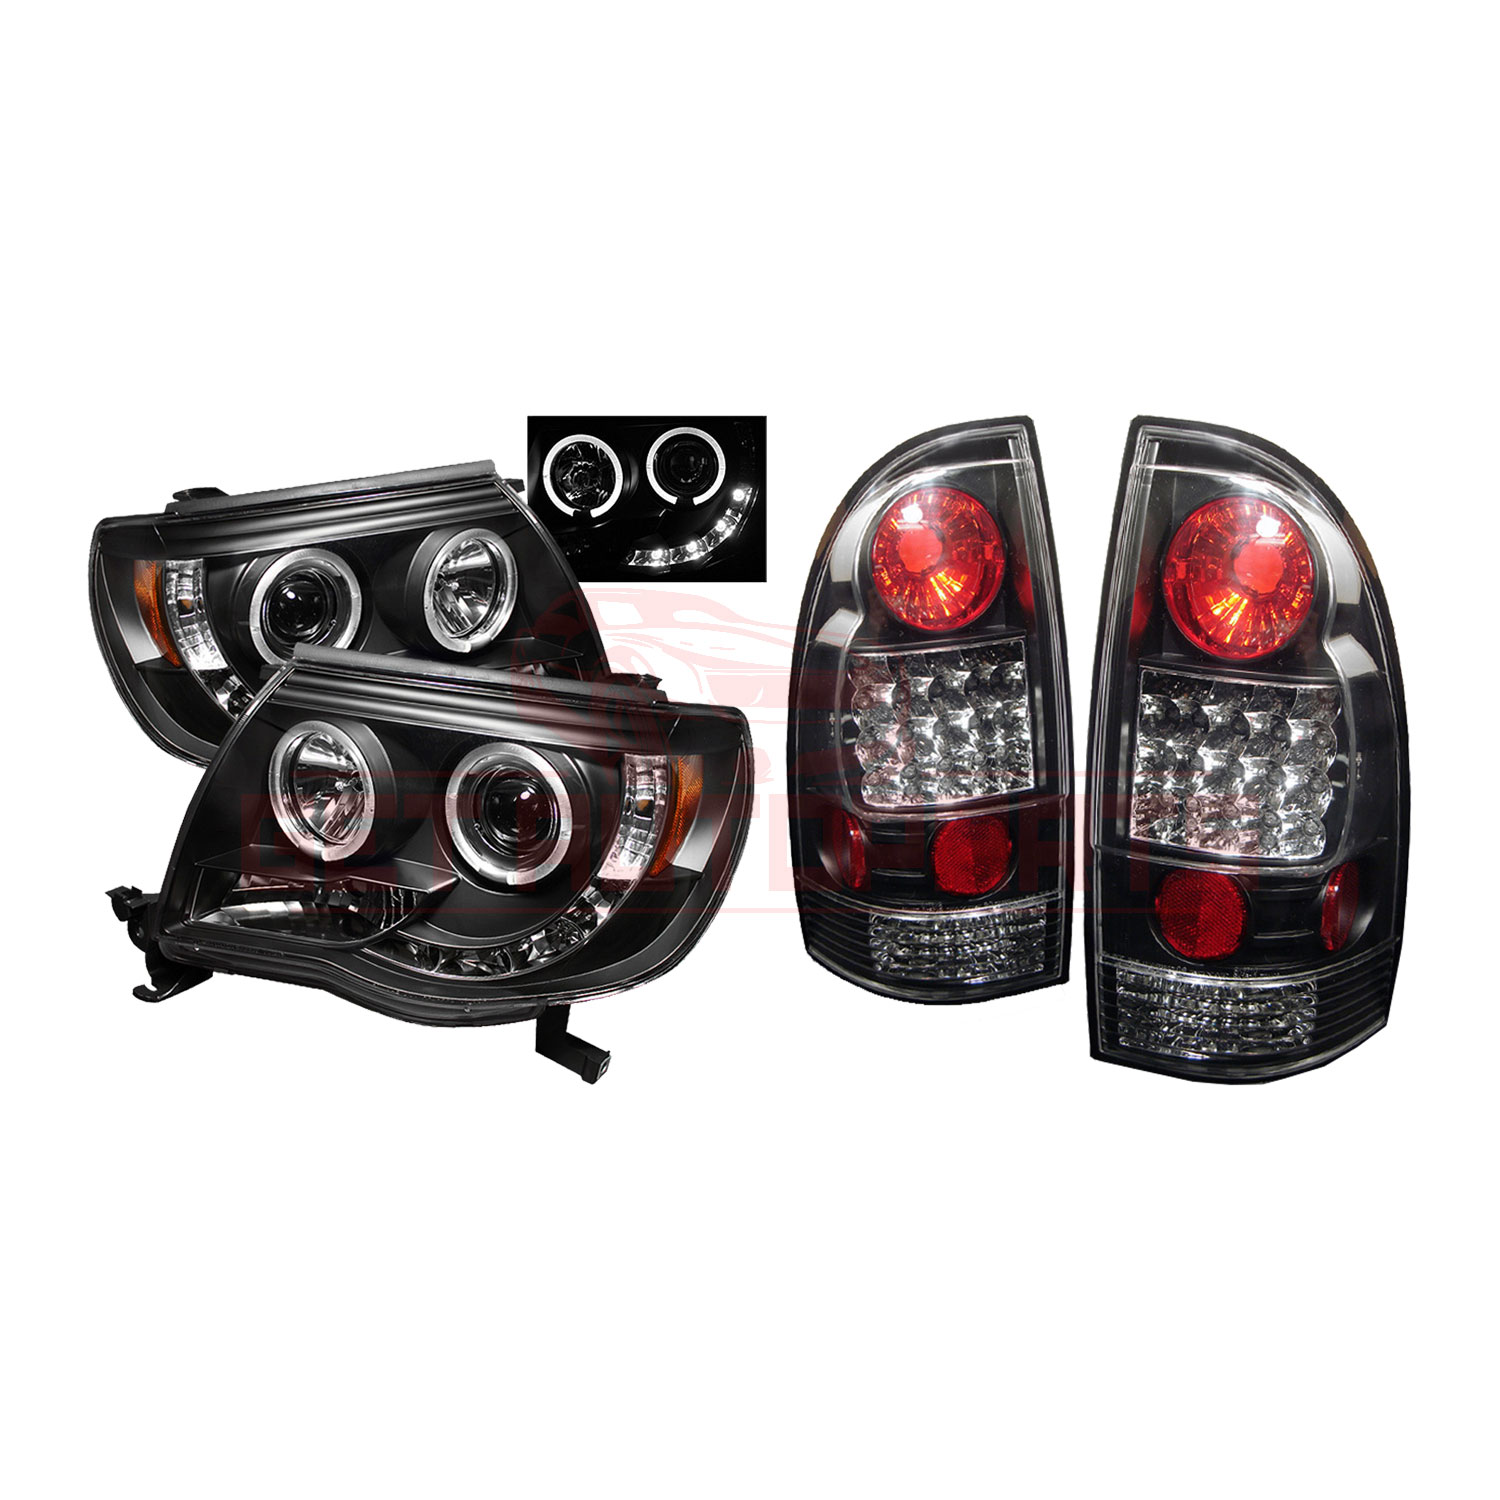 Spyder Halo LED Projector Headlights & LED Tail Lights Black Toyota Tacoma 05-11 part in Headlight & Tail Light Covers category